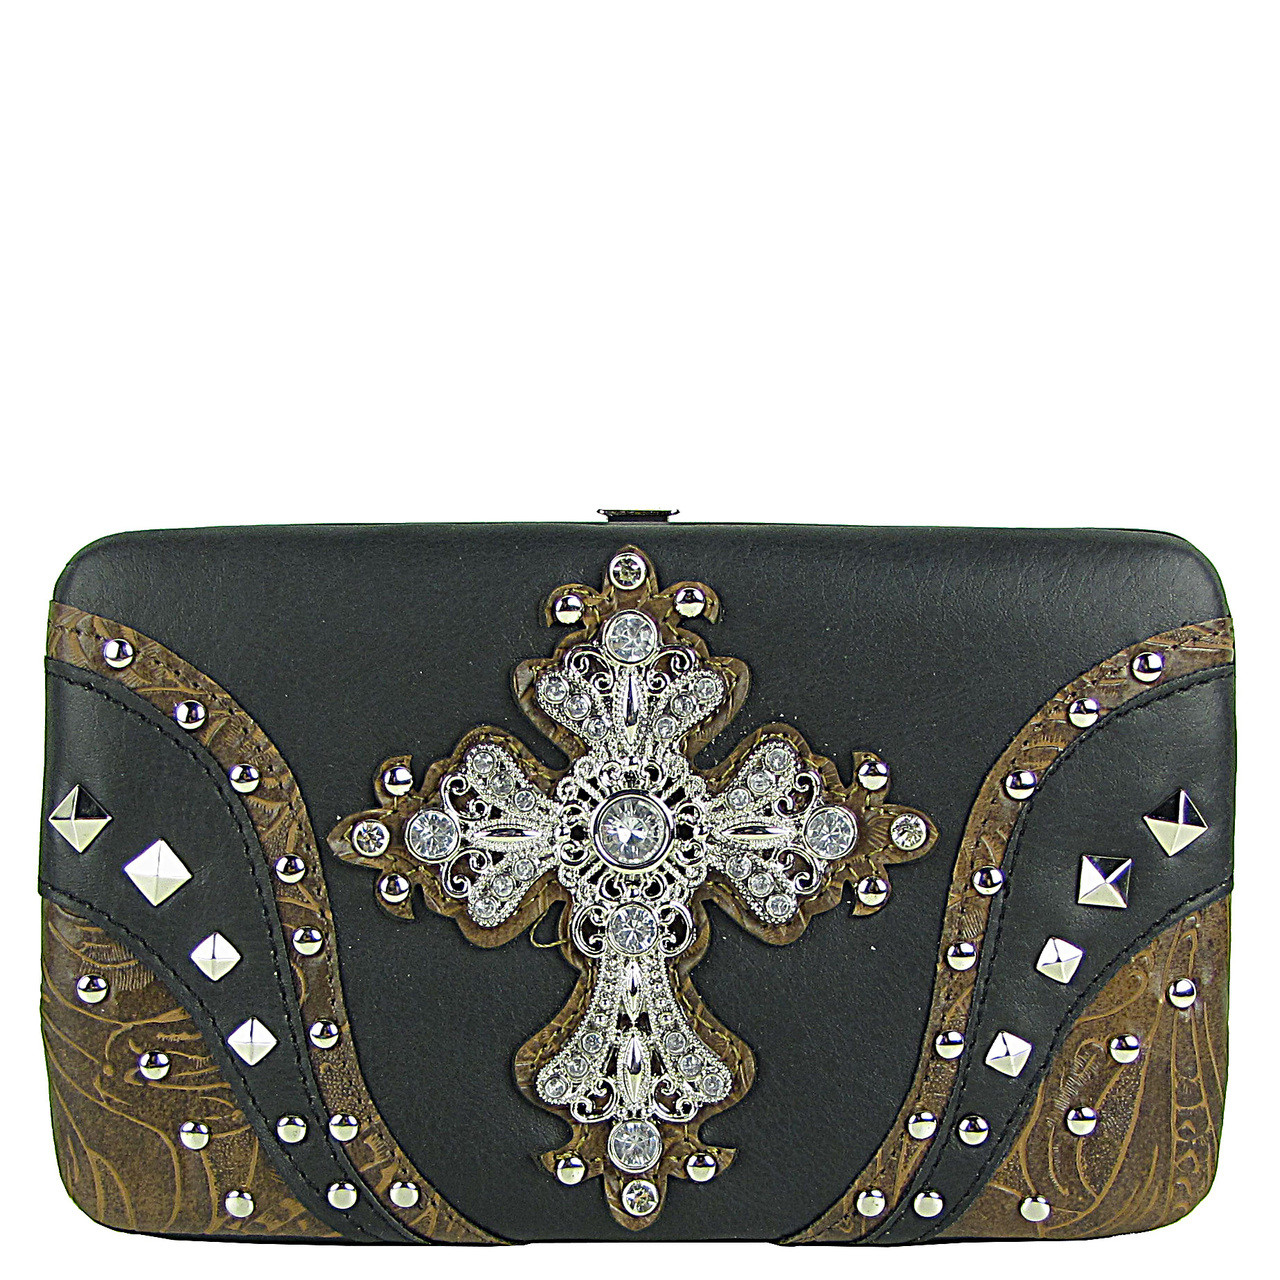 BLACK STUDDED RHINESTONE TOOLED CROSS LOOK FLAT THICK WALLET FW2-04120BLK